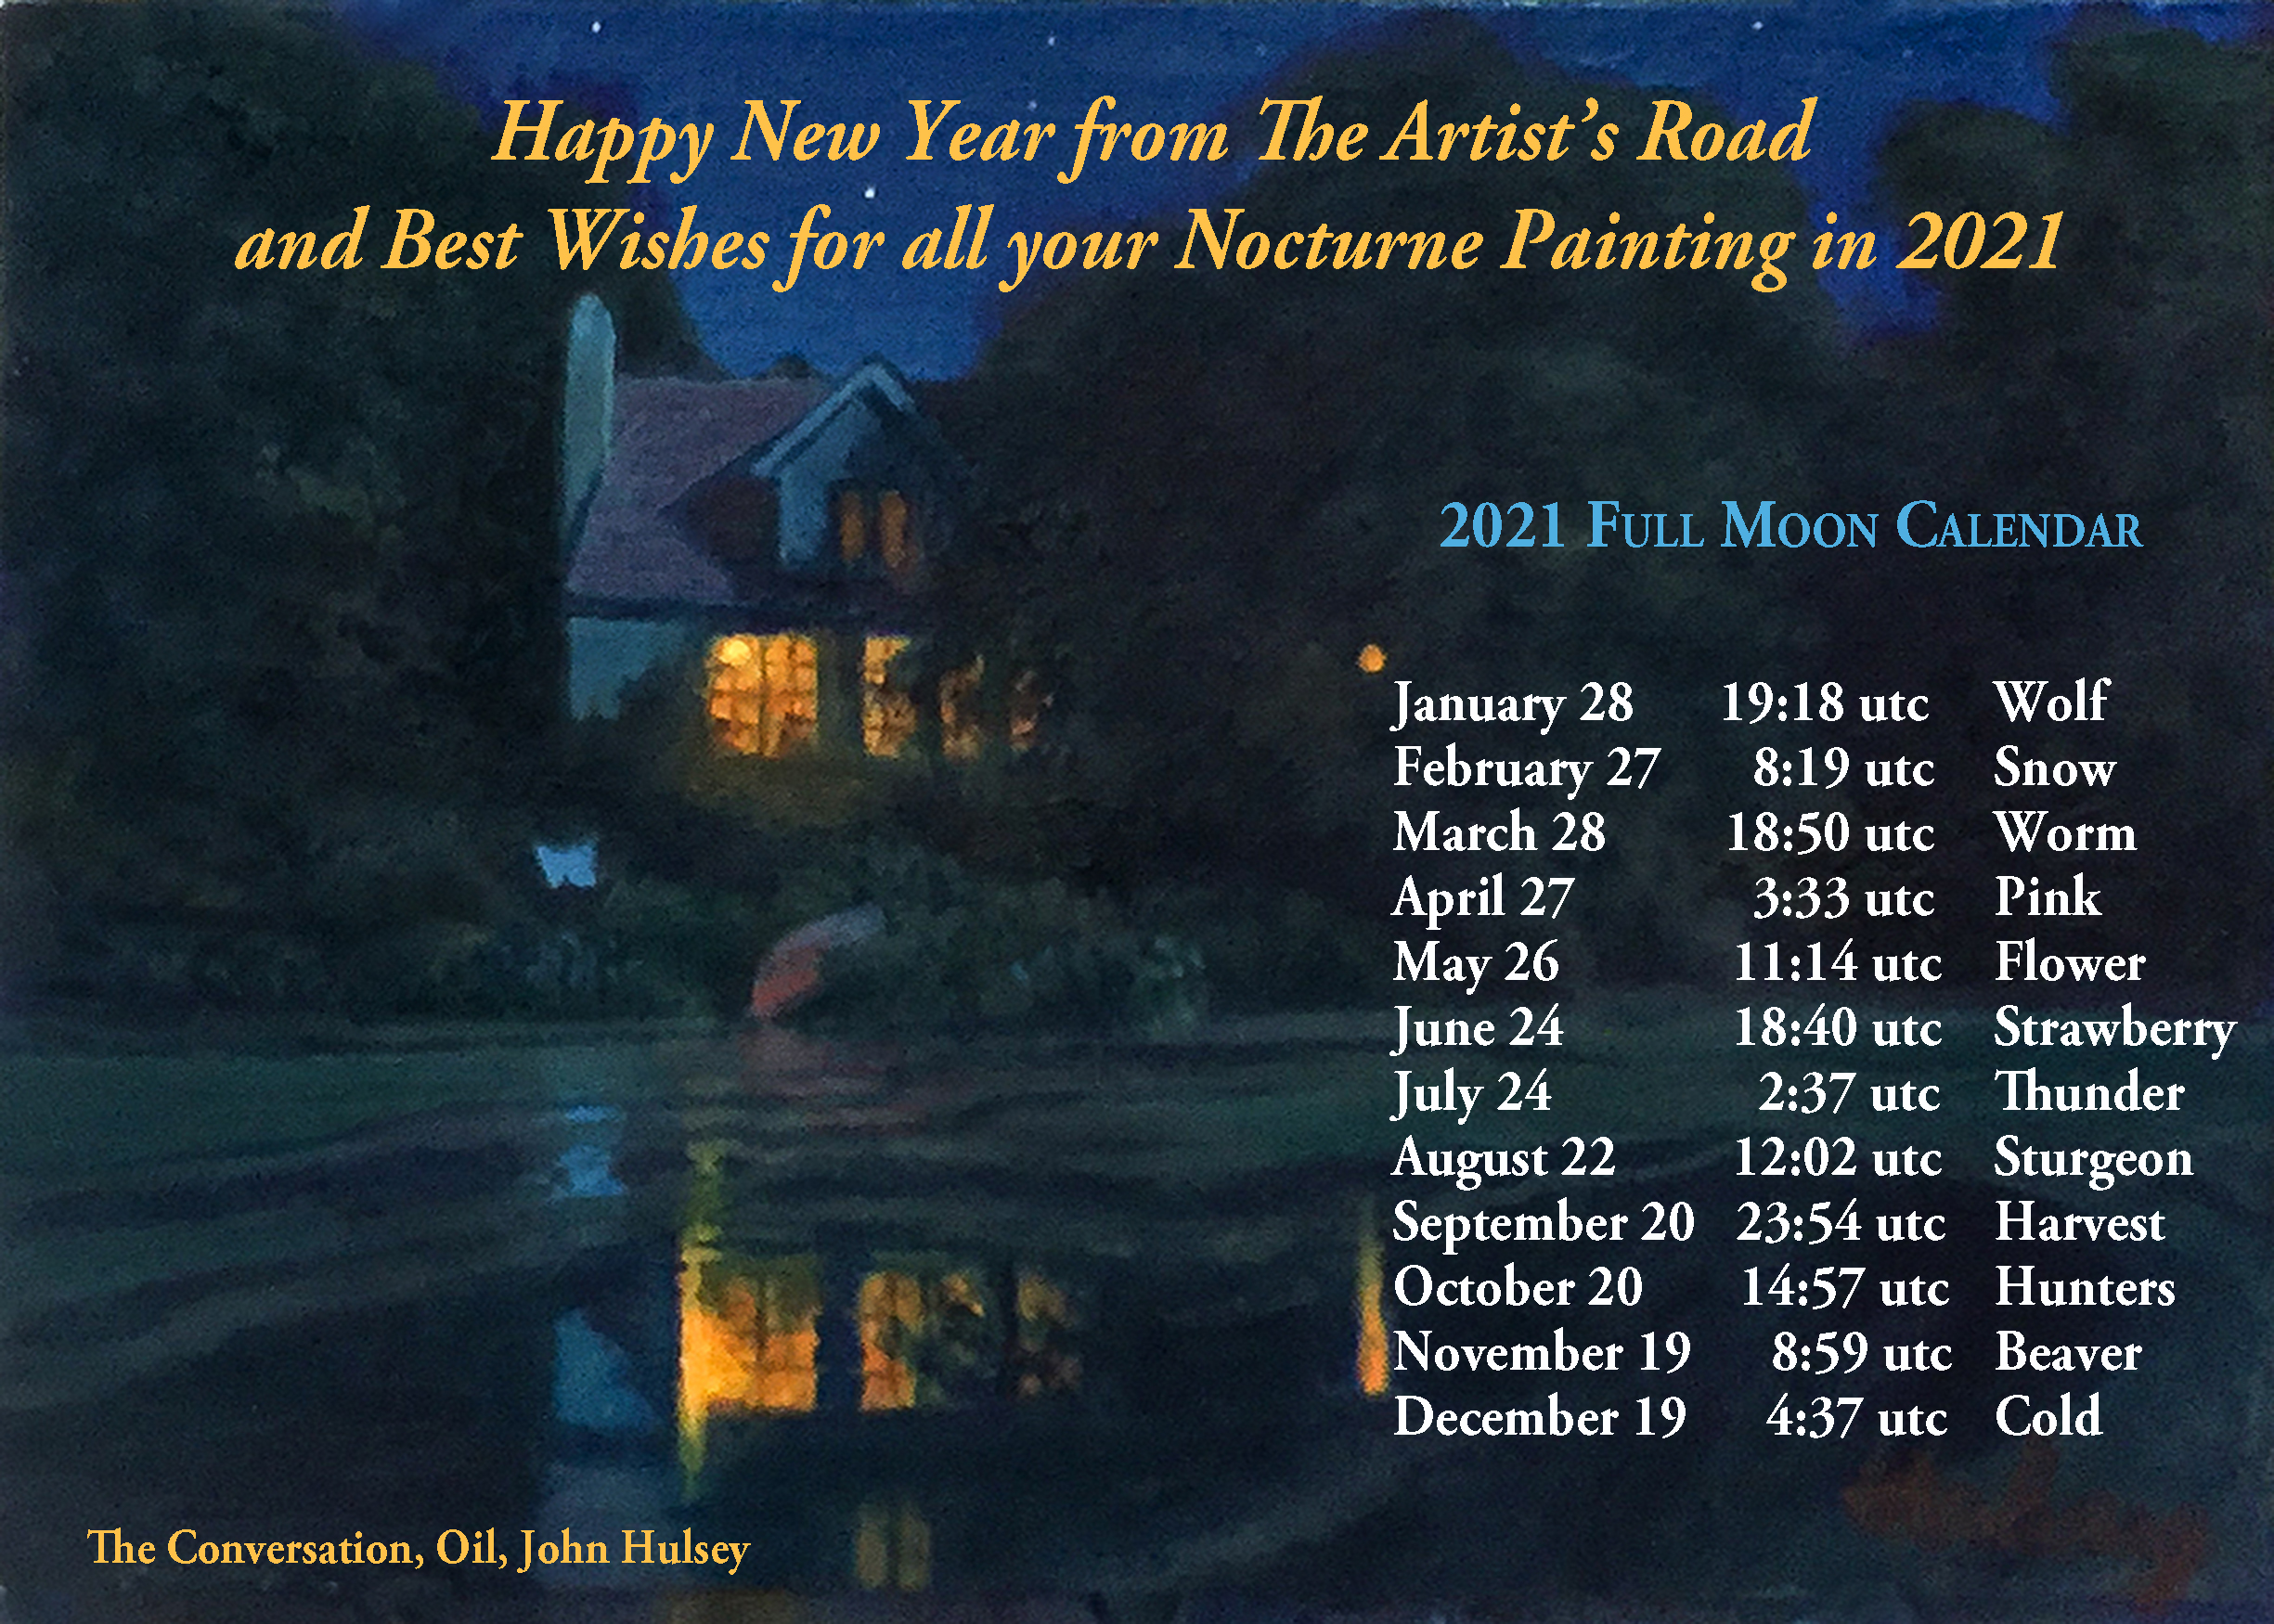 TAR 2020 New Year Full Moon Calendar